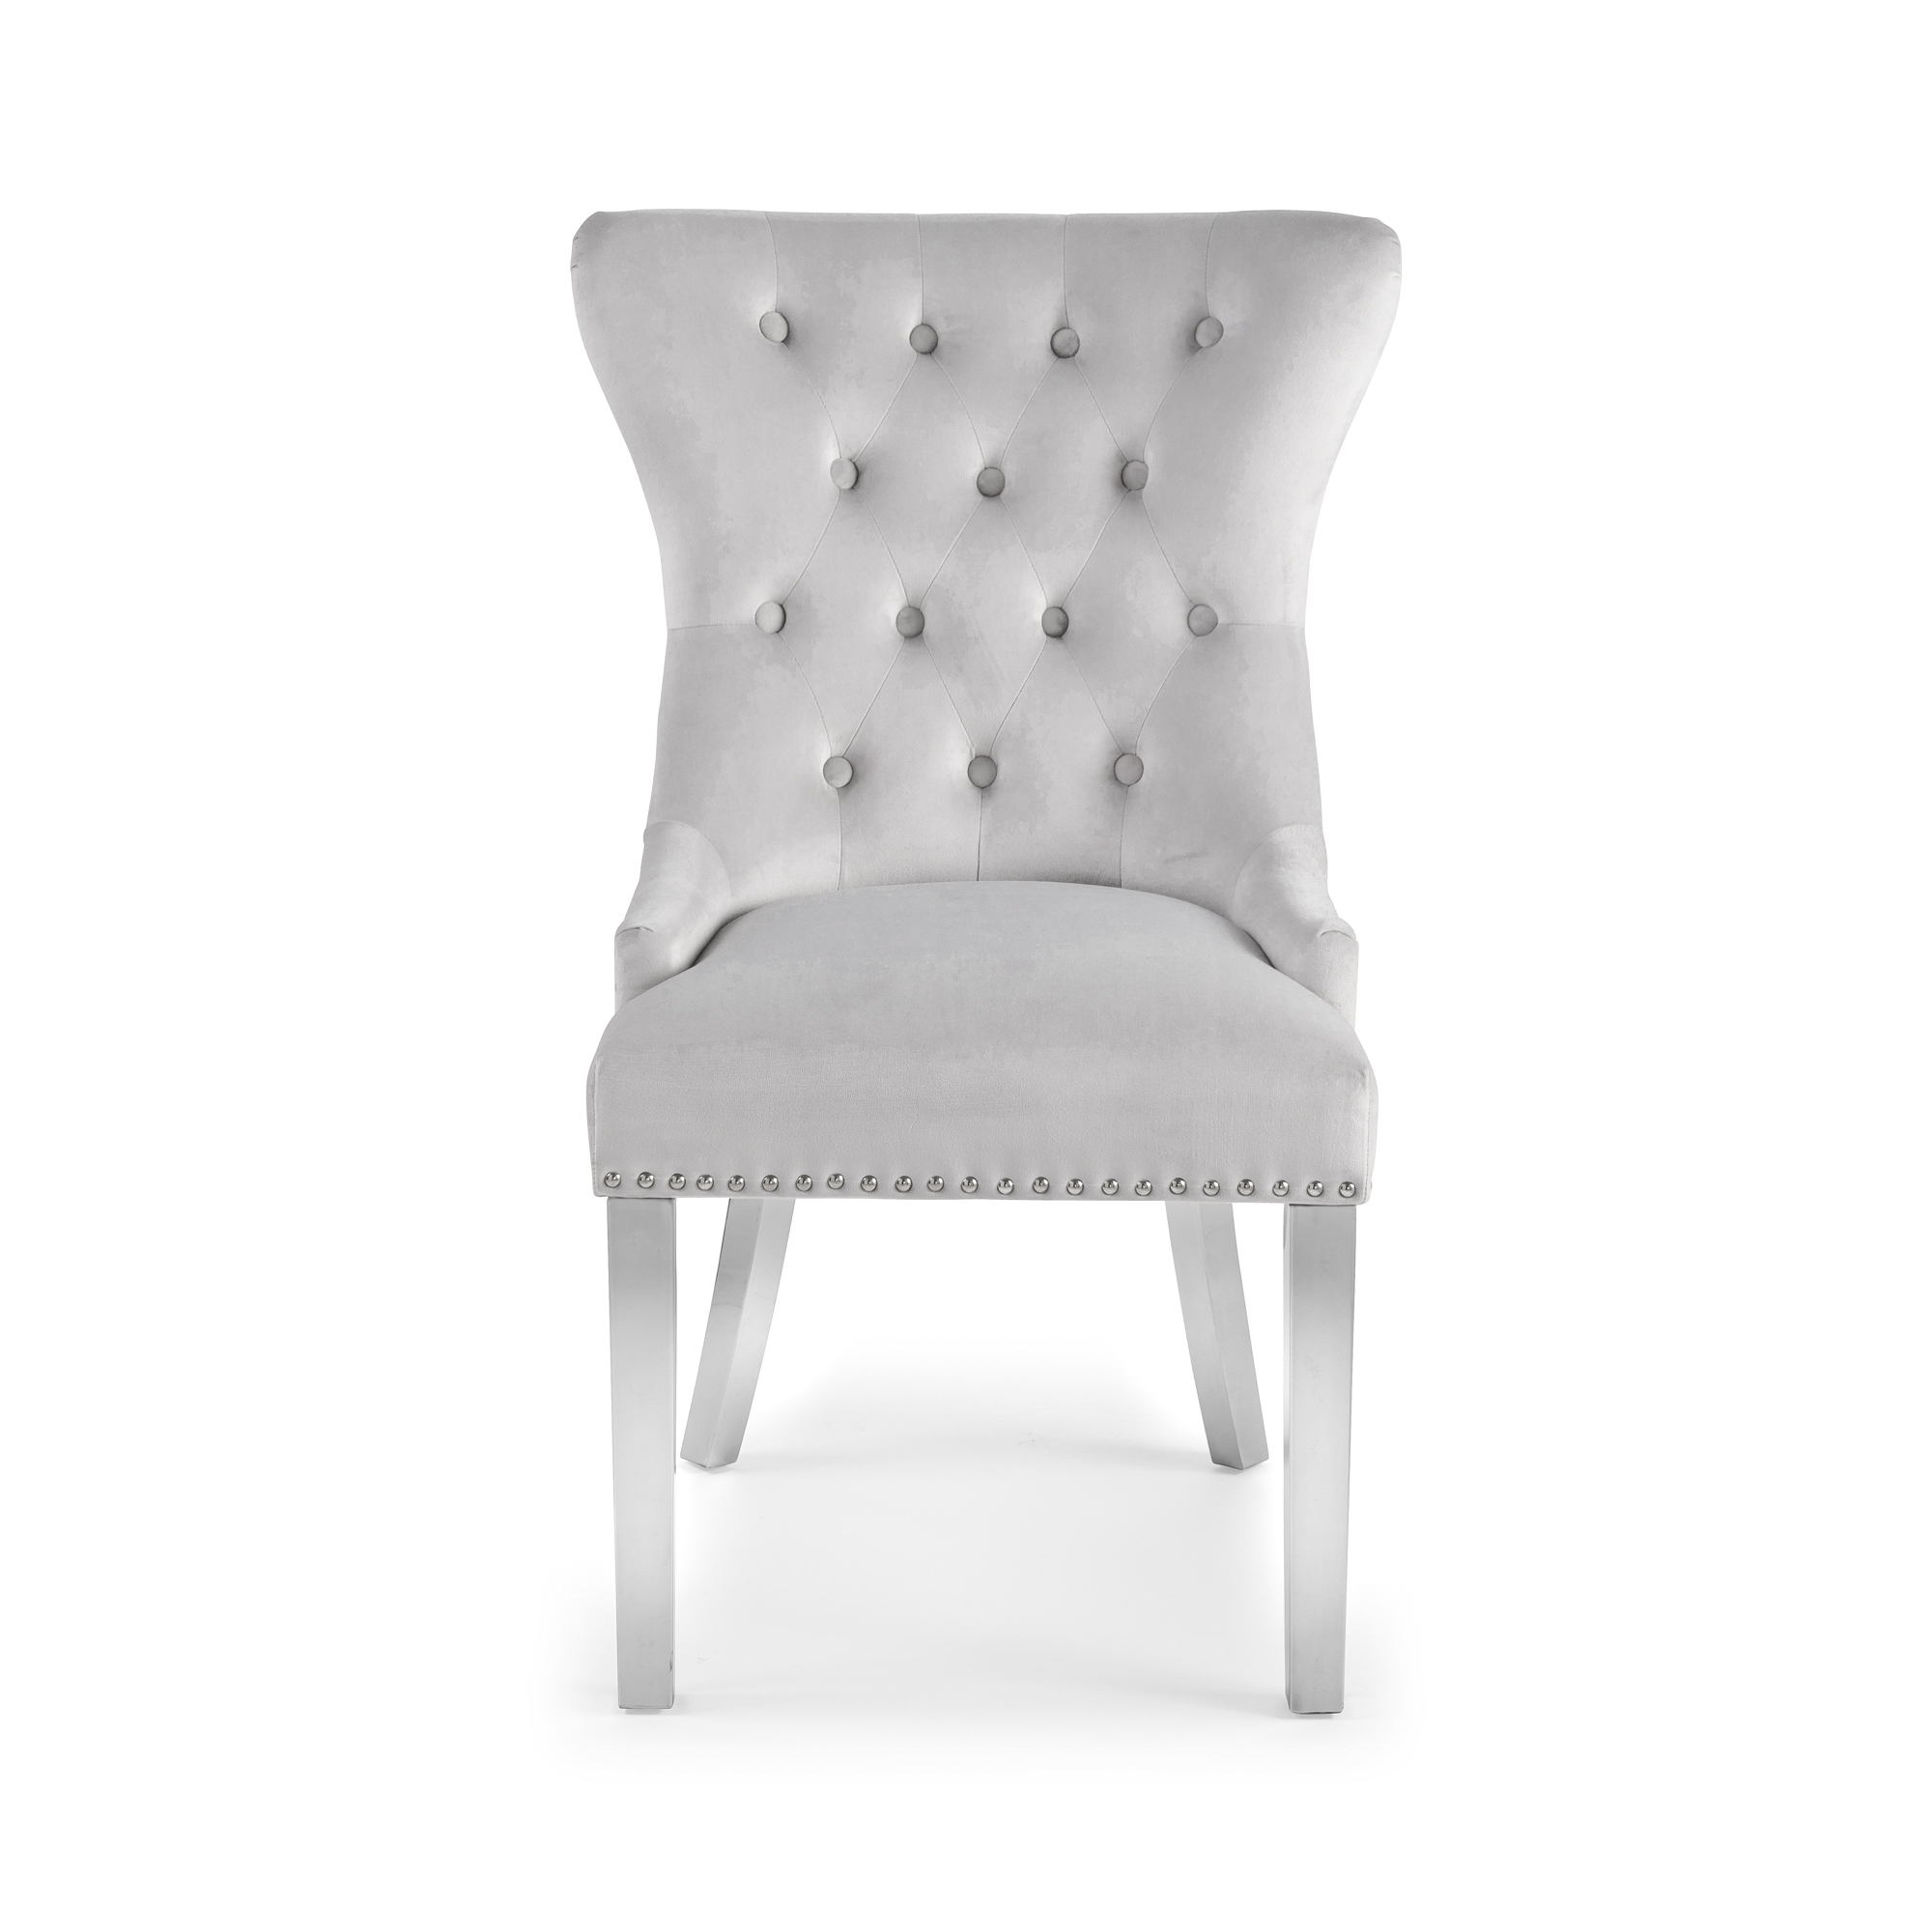 Dove Grey Brushed Velvet Dining Chair with Polished Steel Legs – Set of